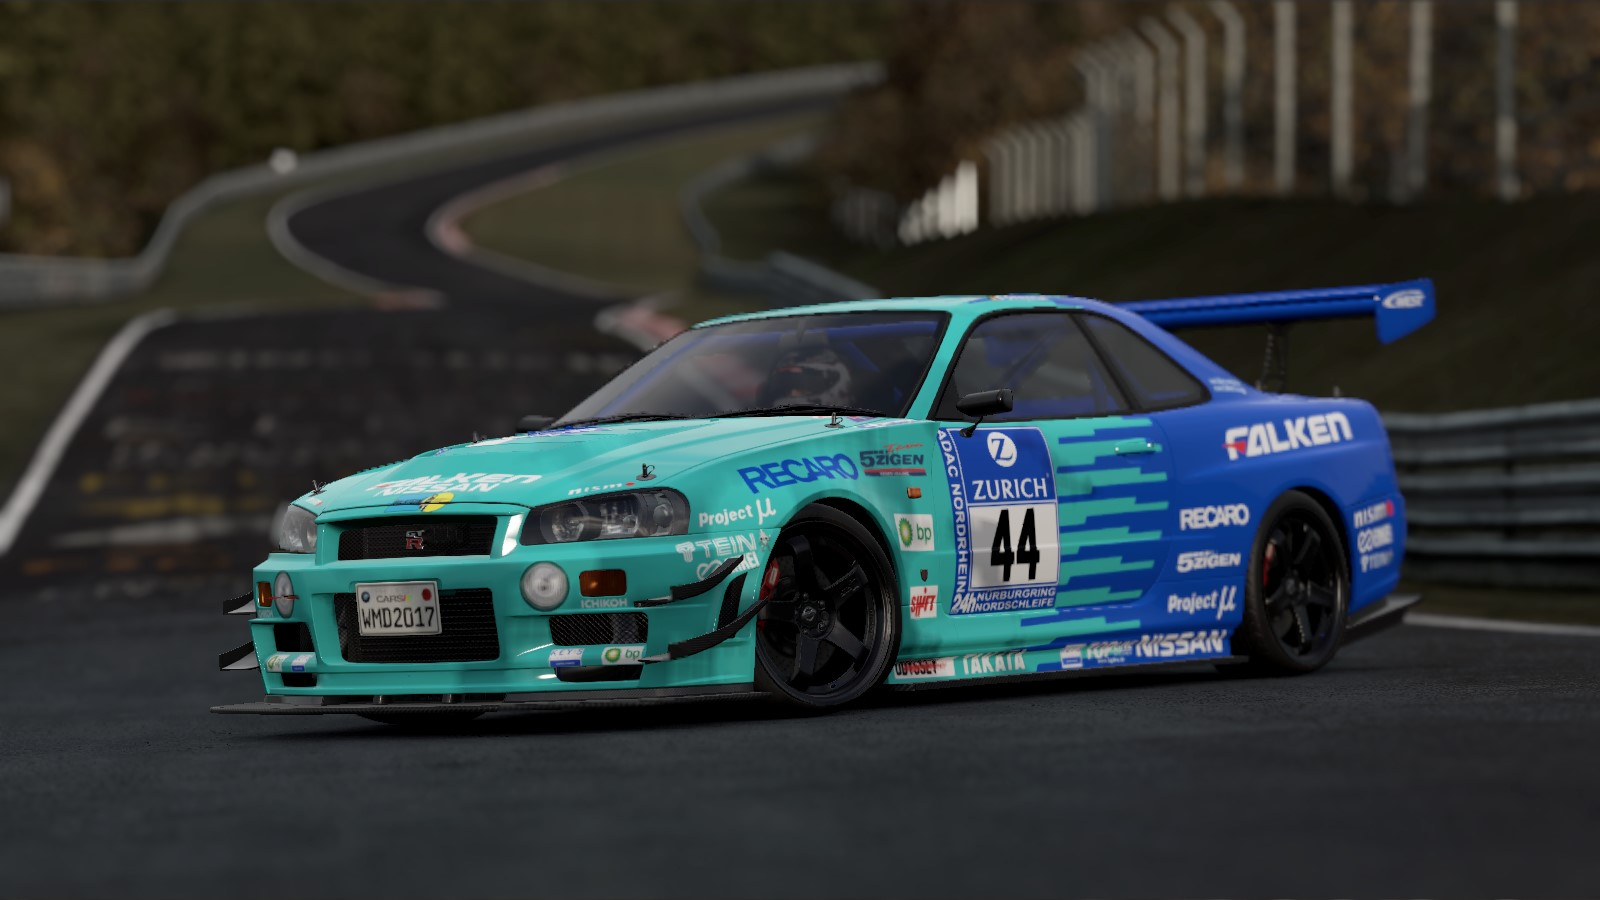 Nissan Skyline Gtr R34 Falken 24h | RaceDepartment - Latest